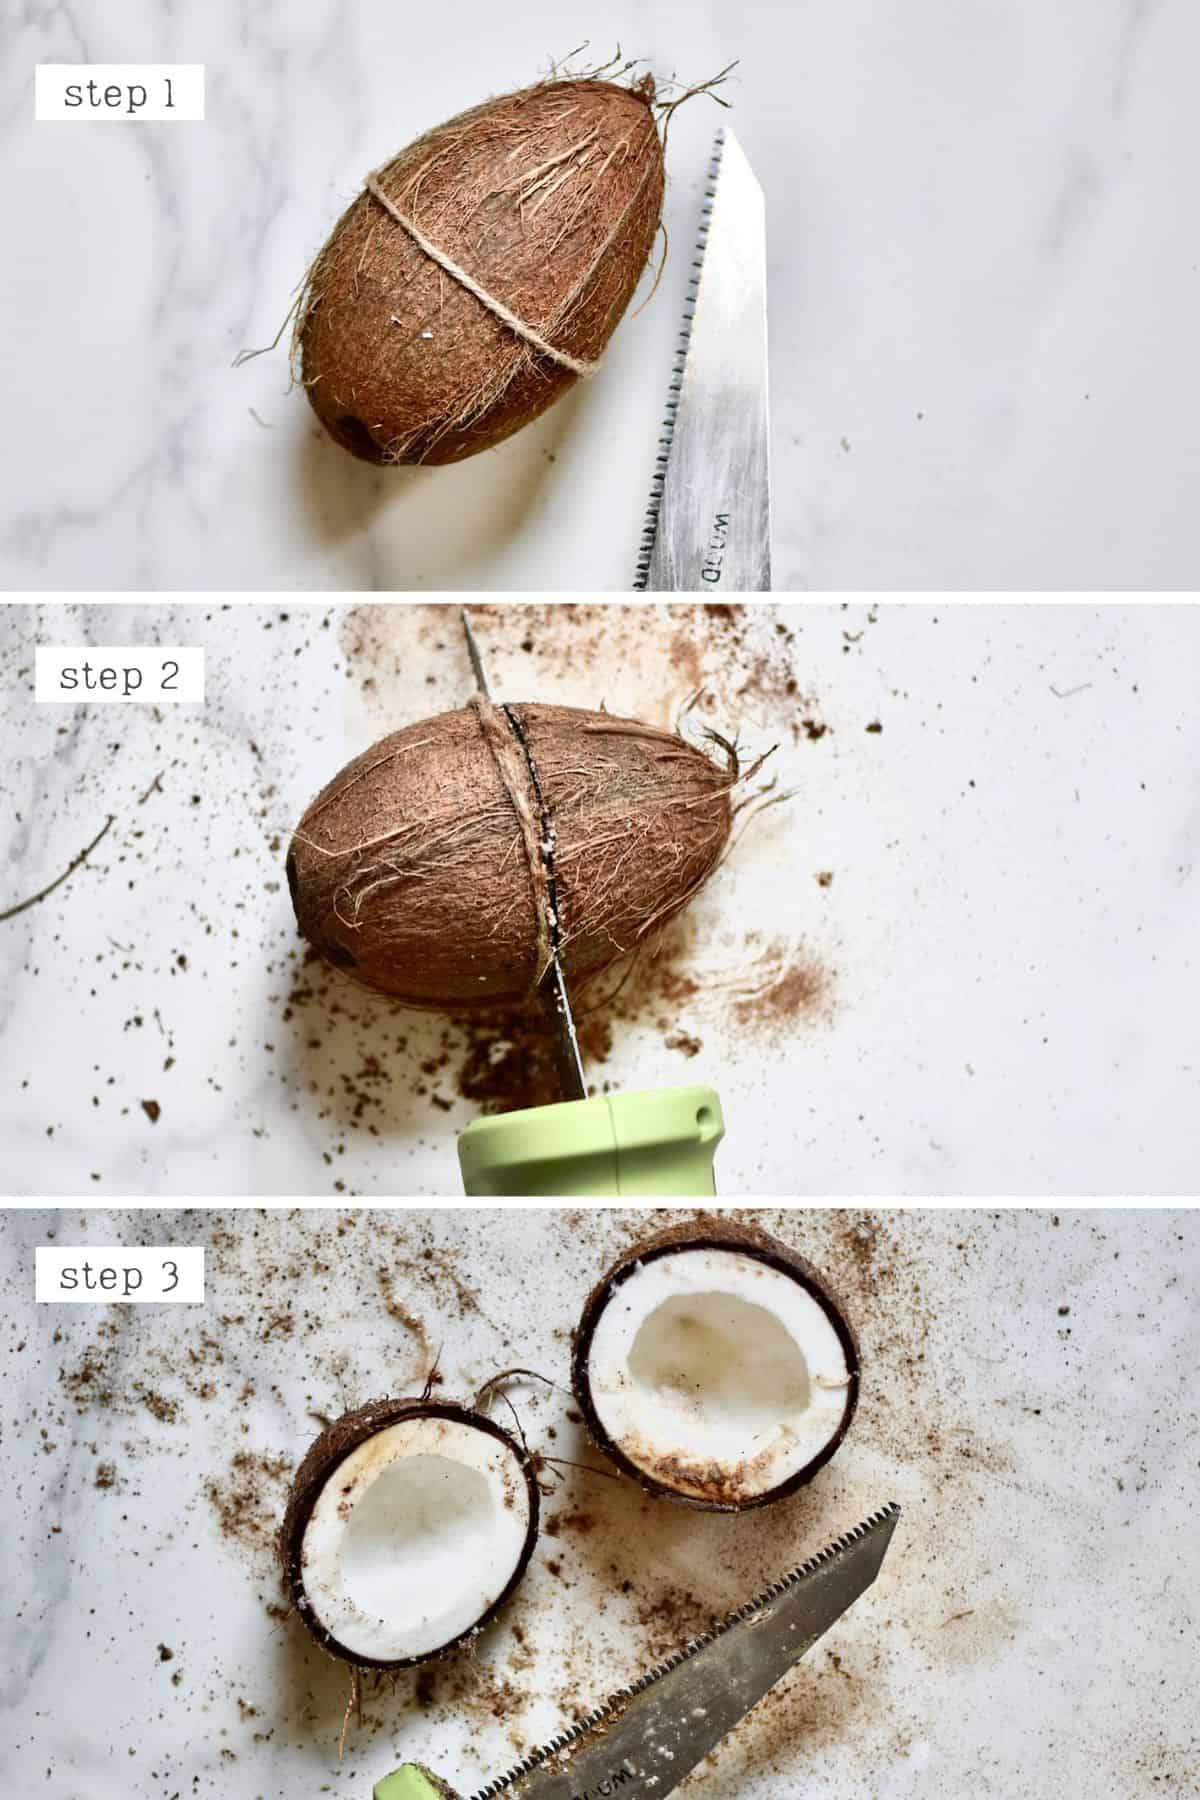 Steps of opening a coconut using a saw